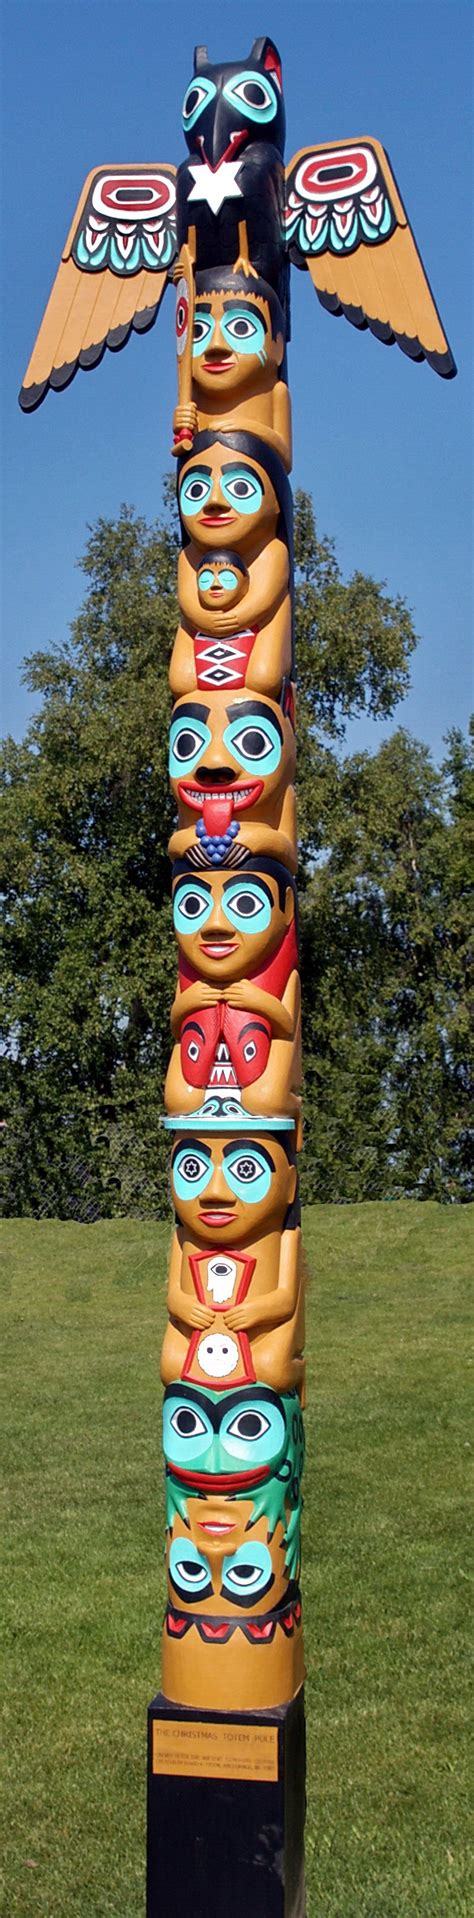 images of totem poles and easter totem poles by david k fison the